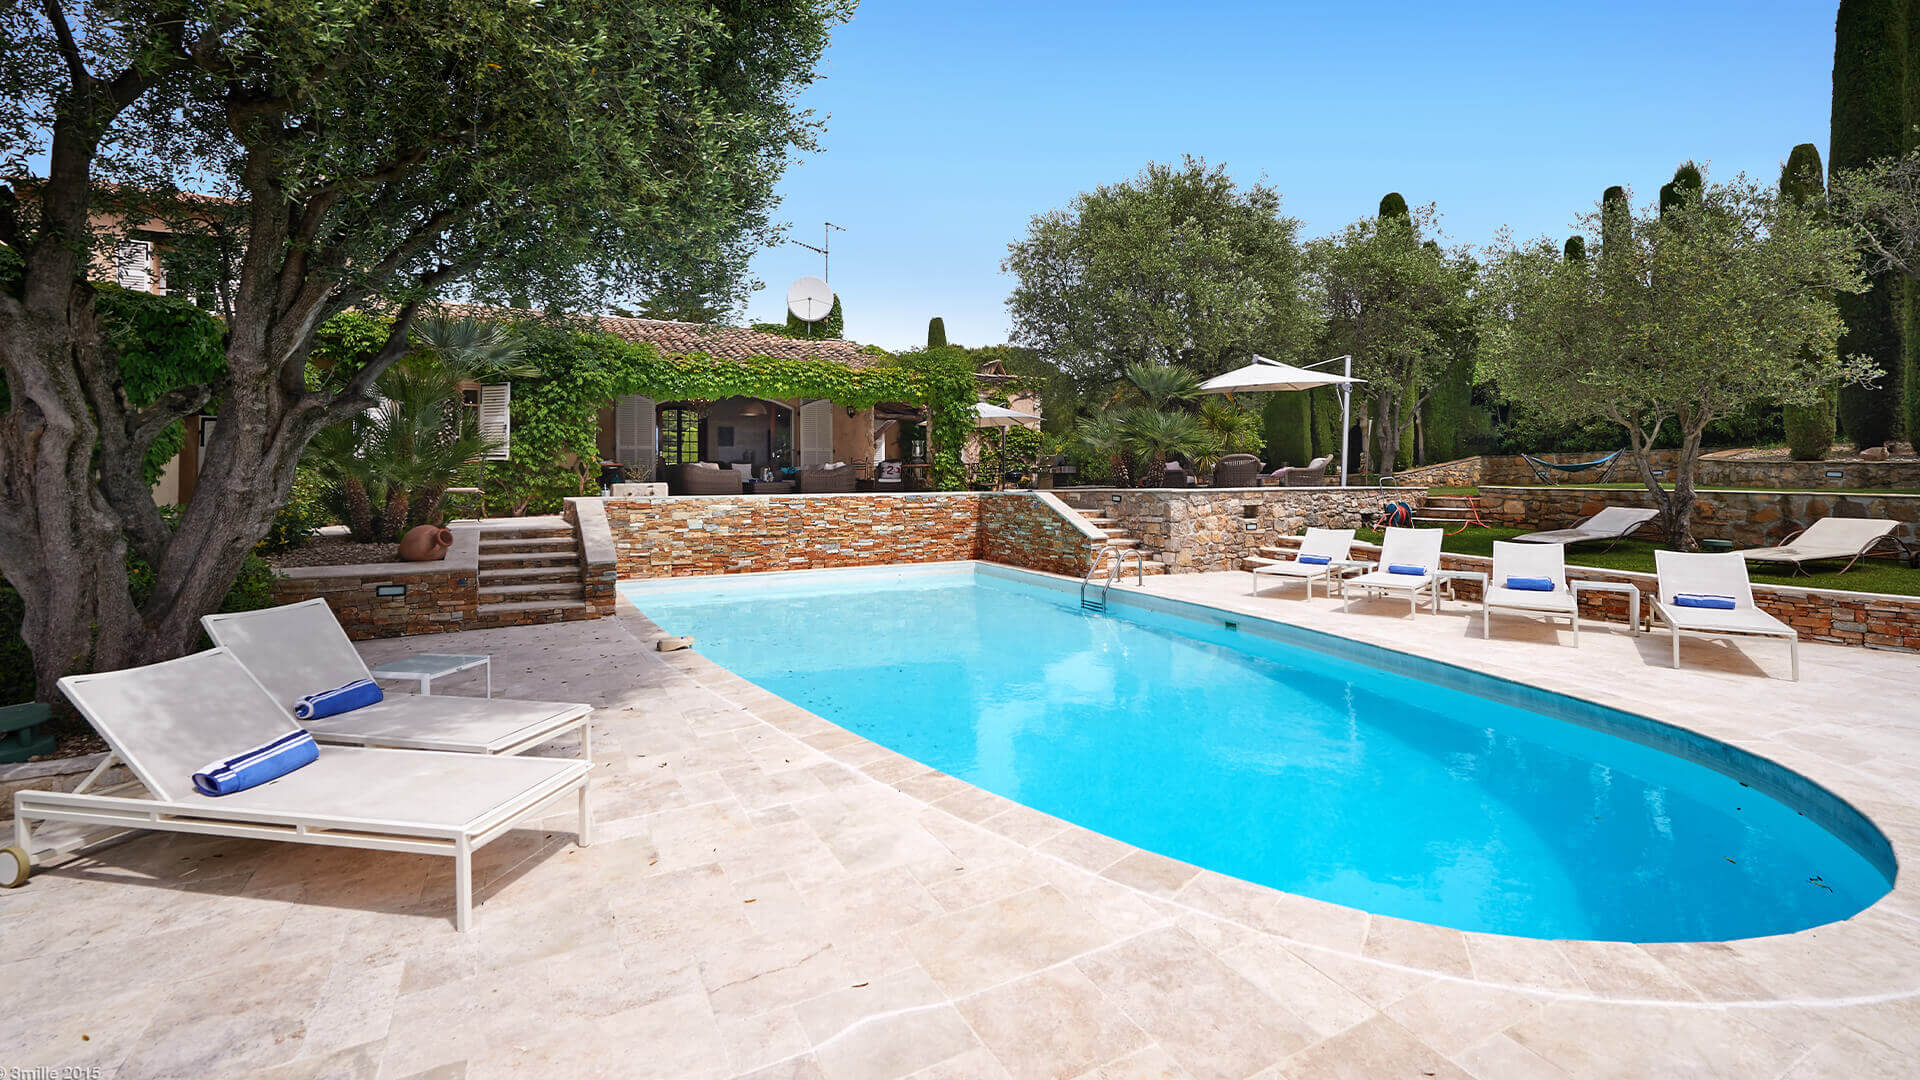 Bastide in Mougins swimming pool with loungers